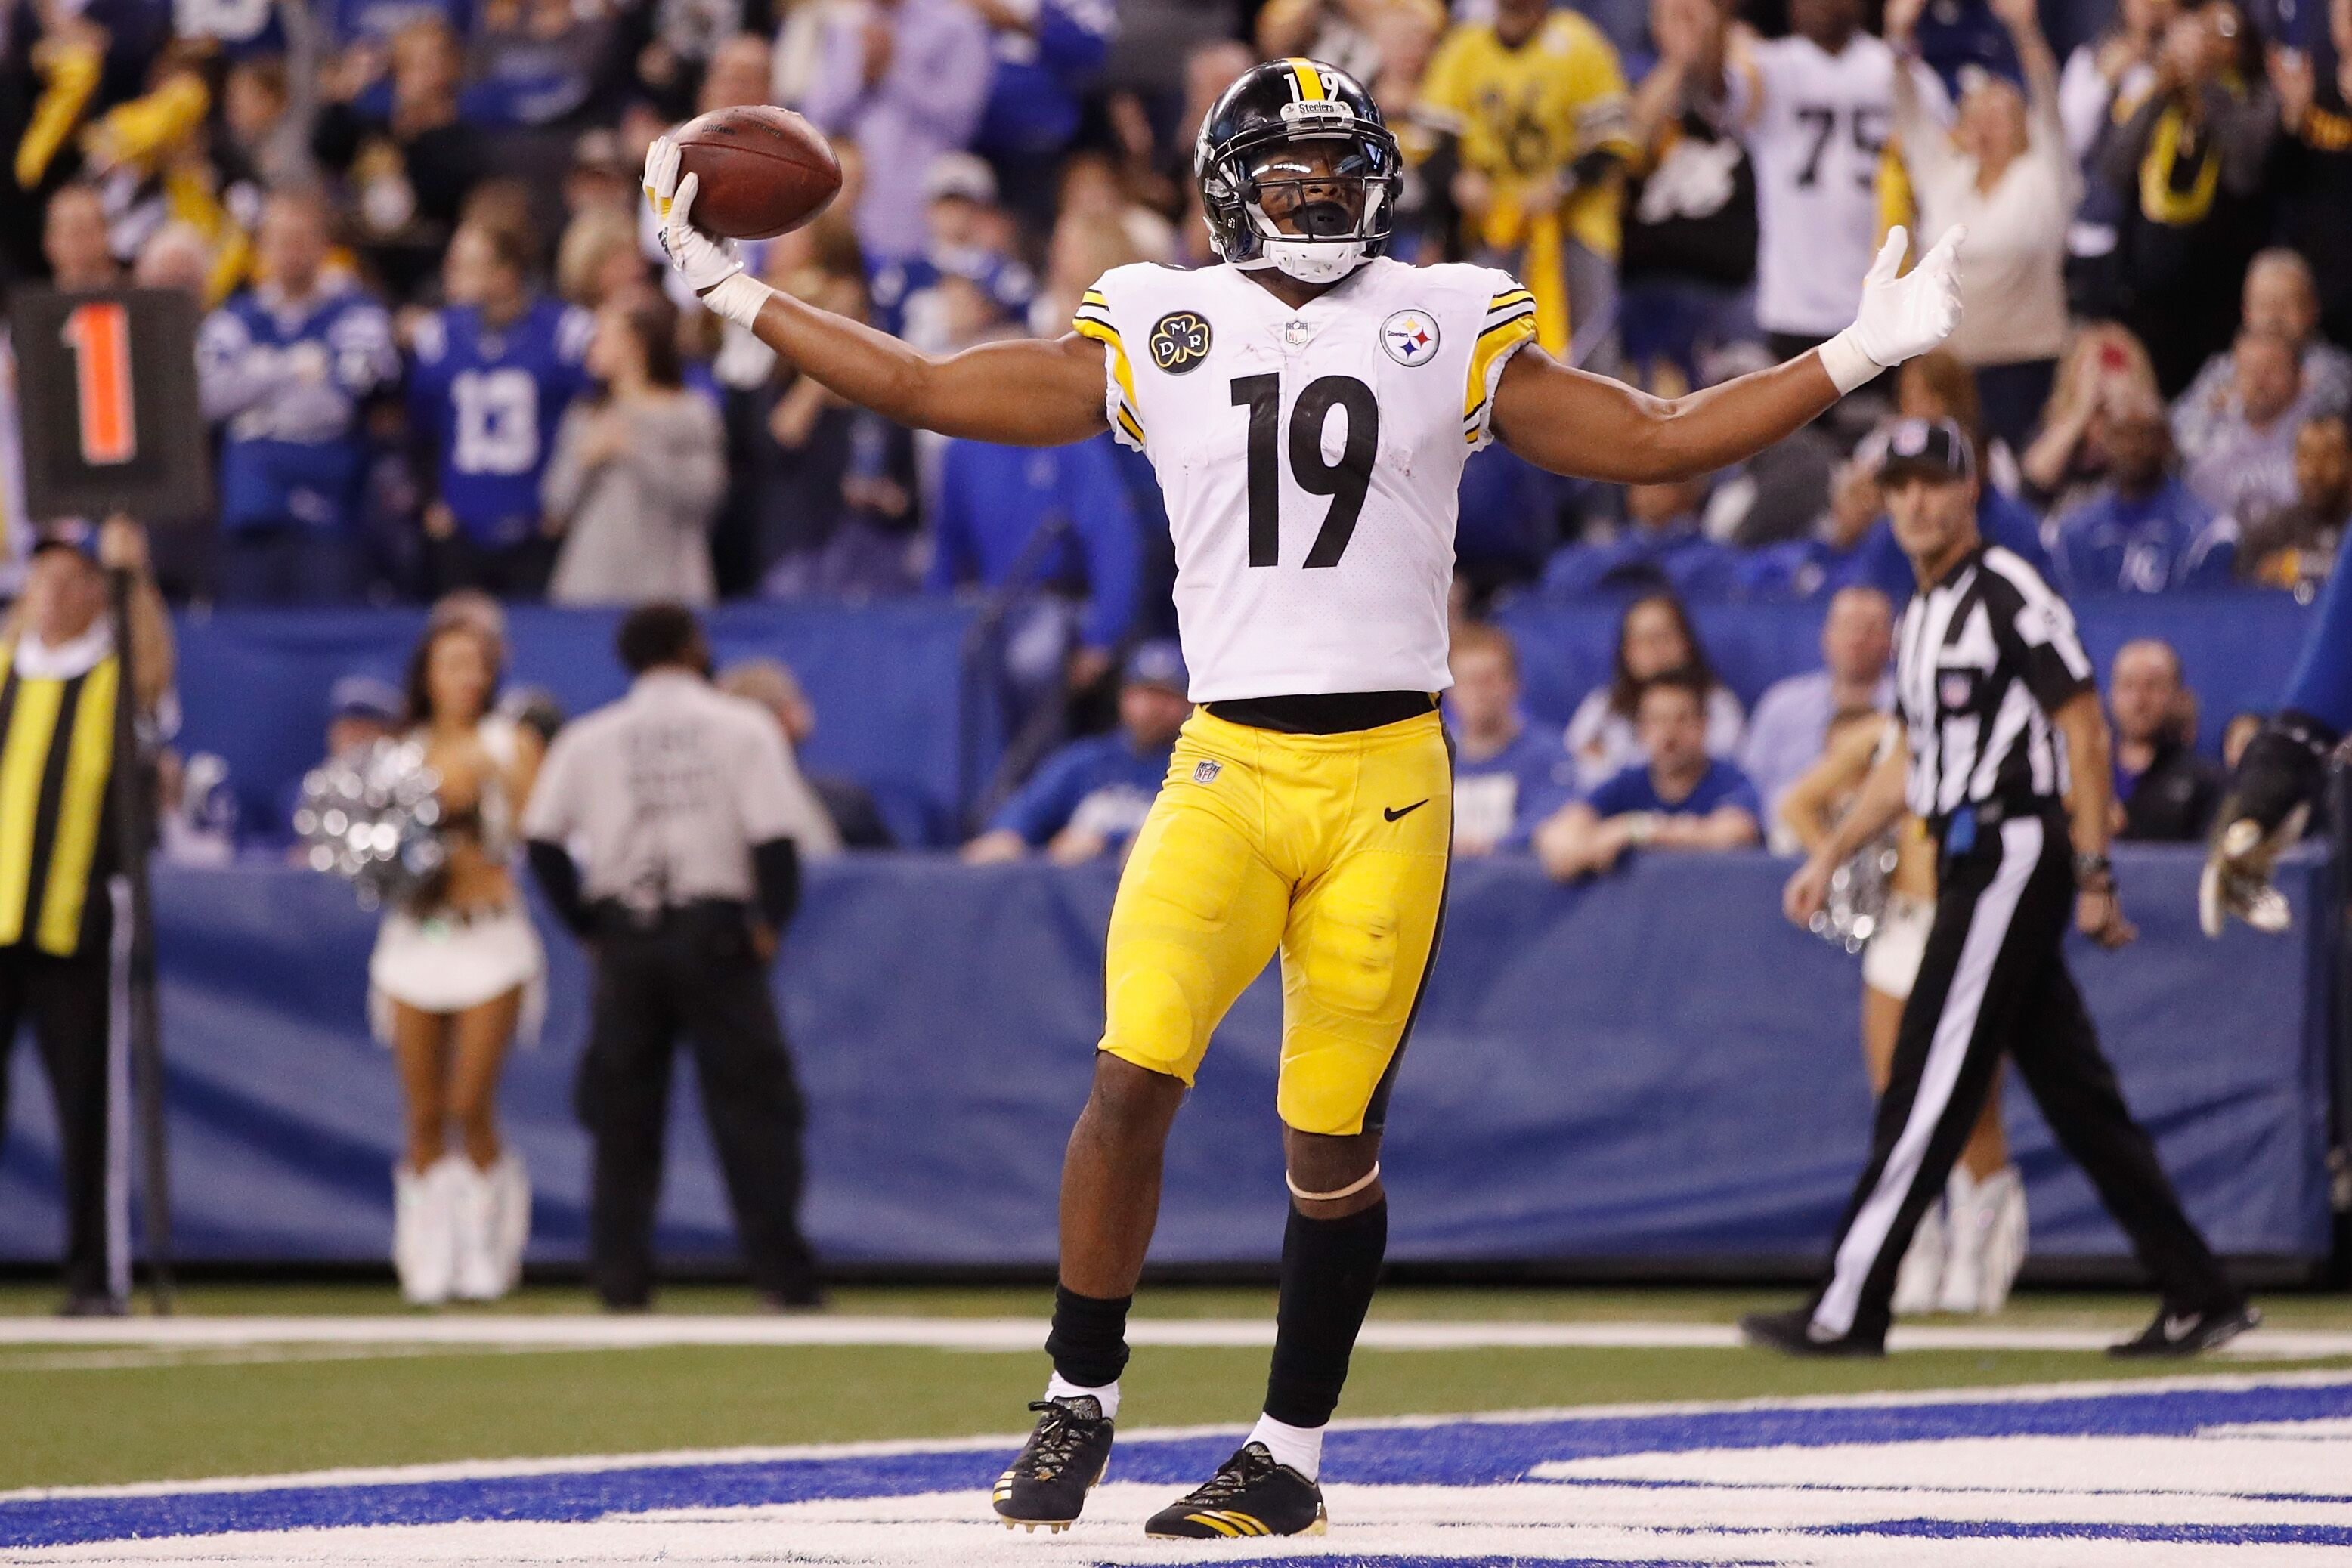 873328552-pittsburgh-steelers-v-indianapolis-colts.jpg